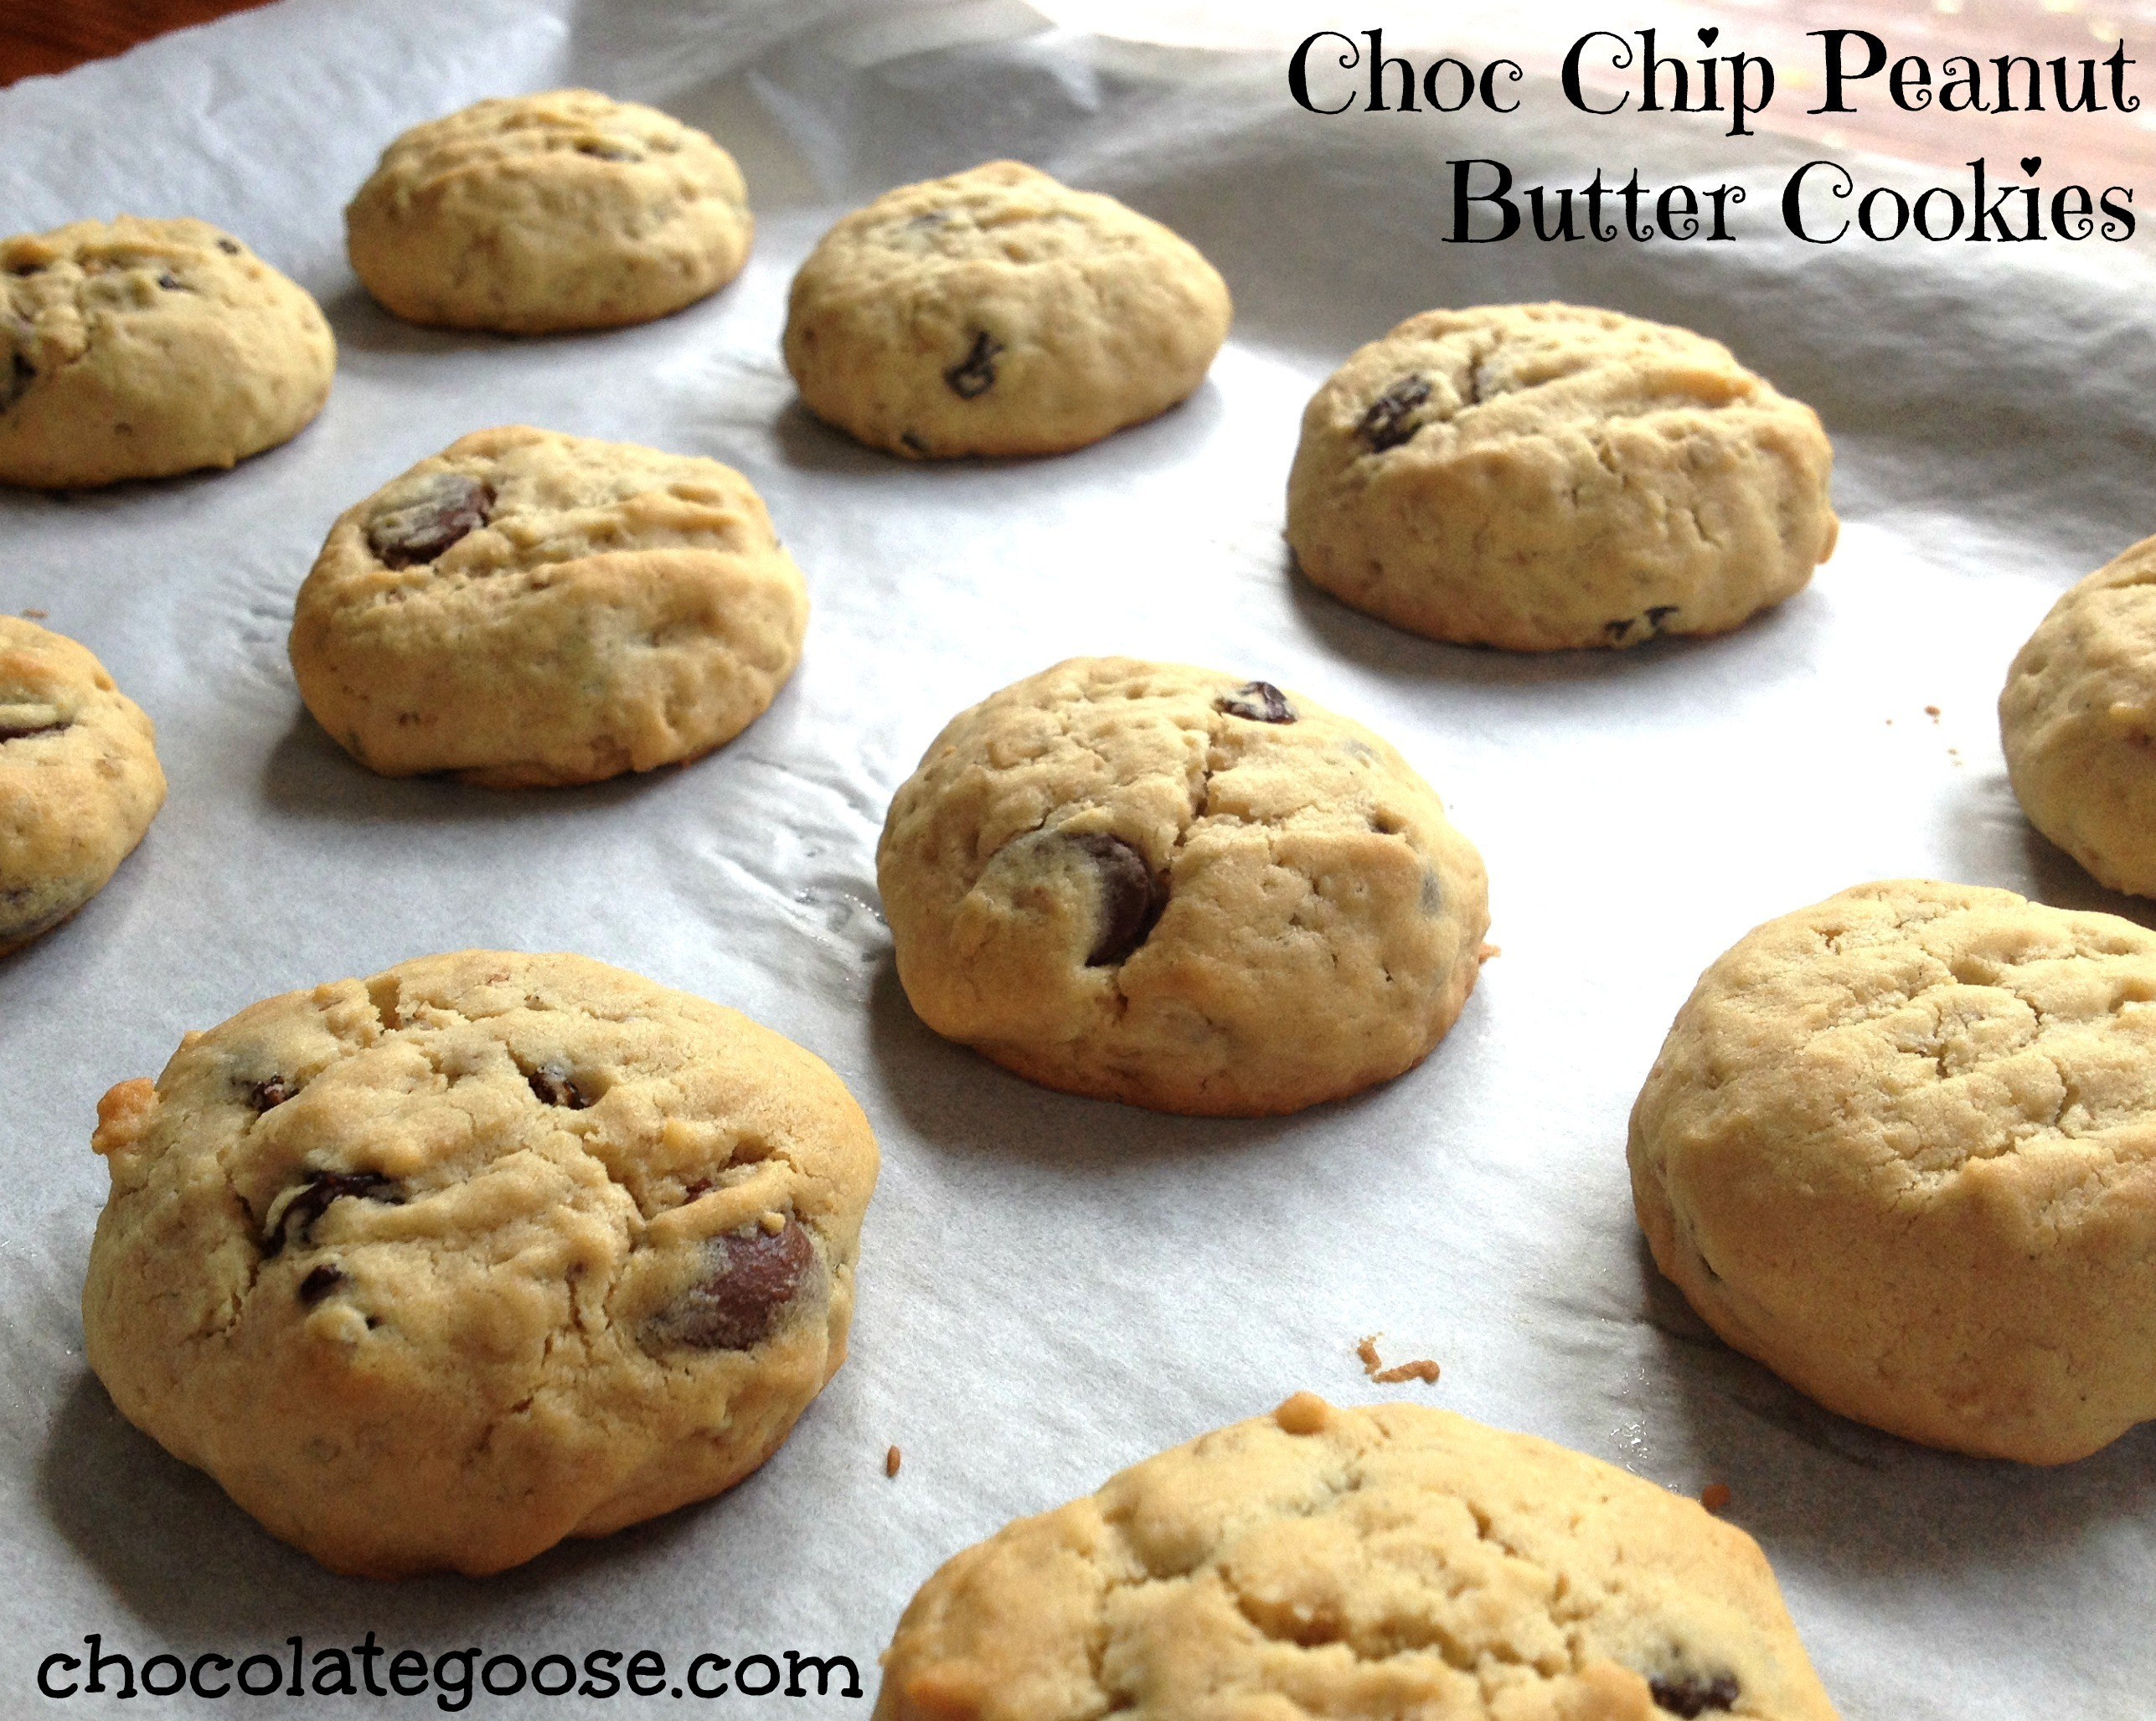 Oaty Peanut Butter and Choc Chip Cookies